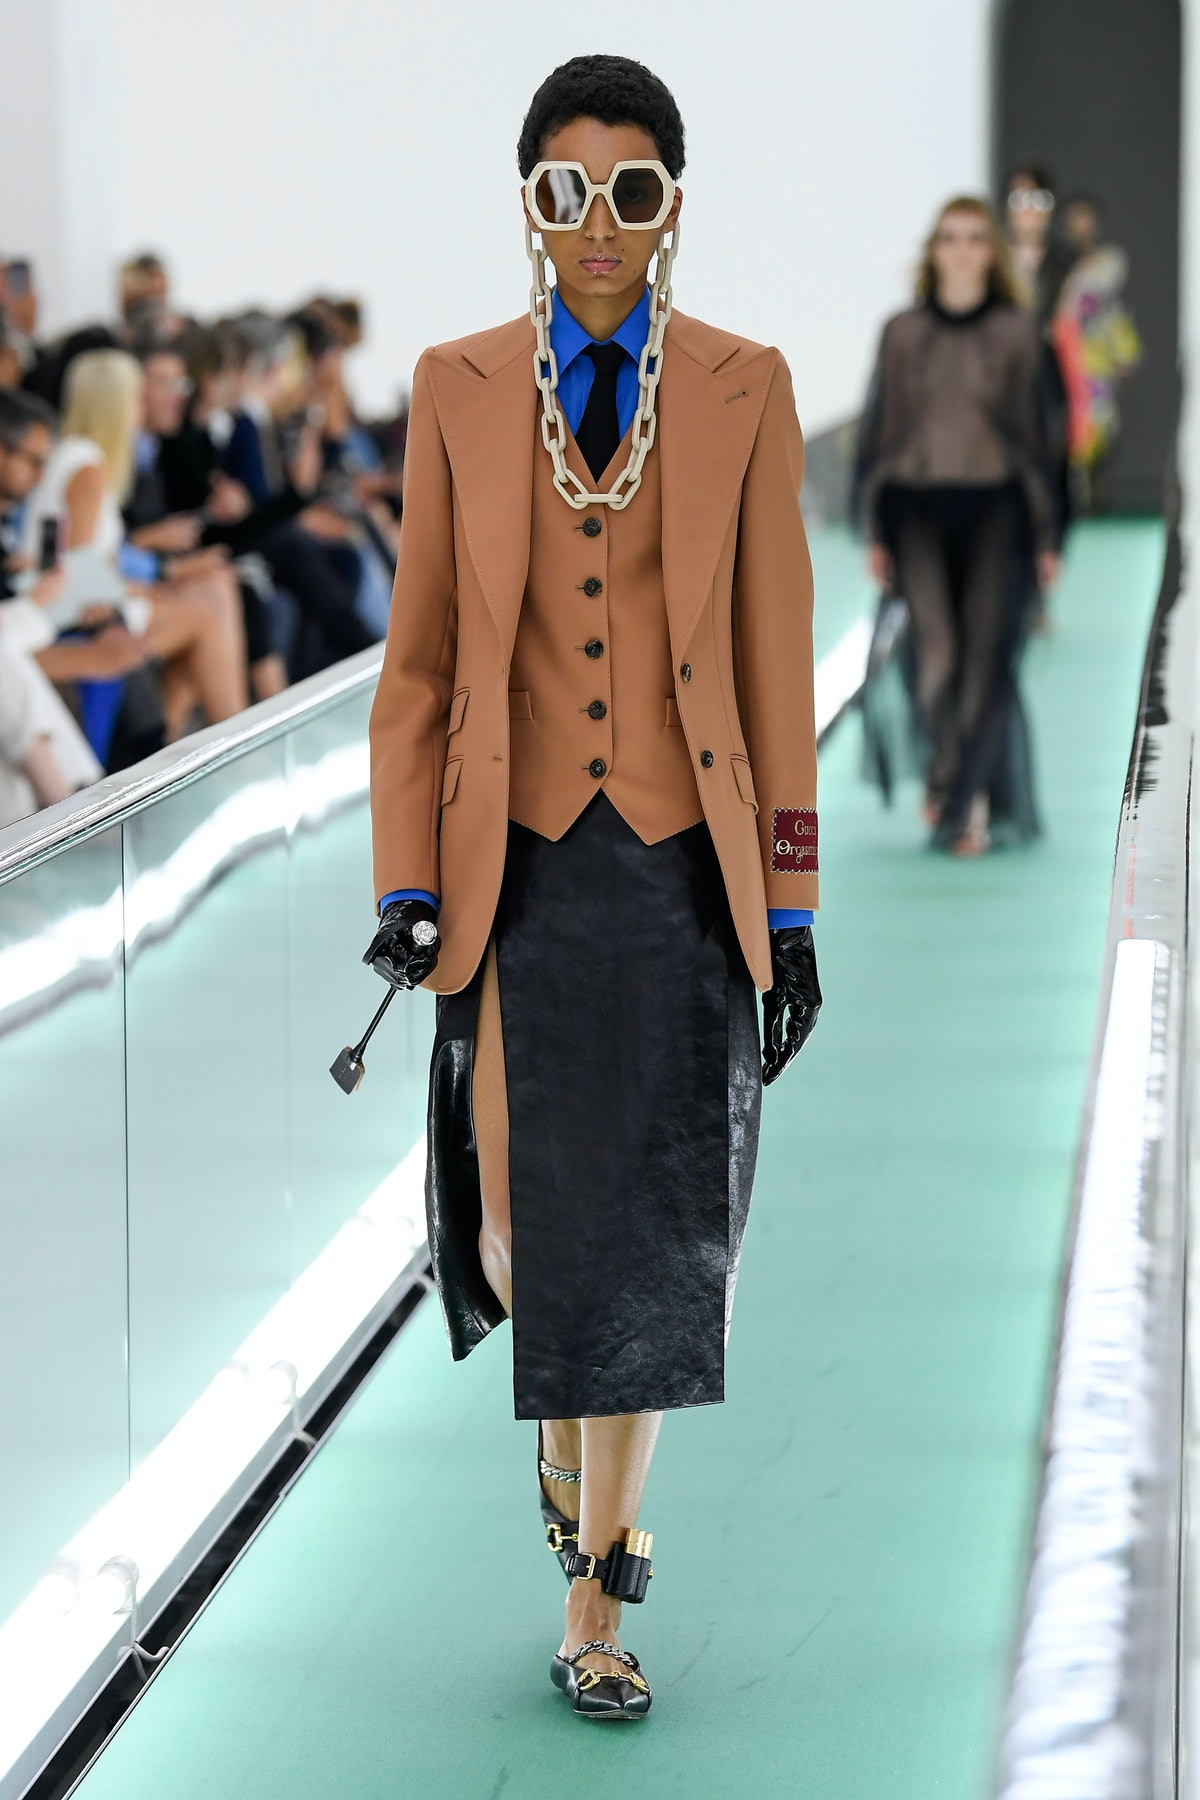 70s runway trend for Spring 2020 at Gucci